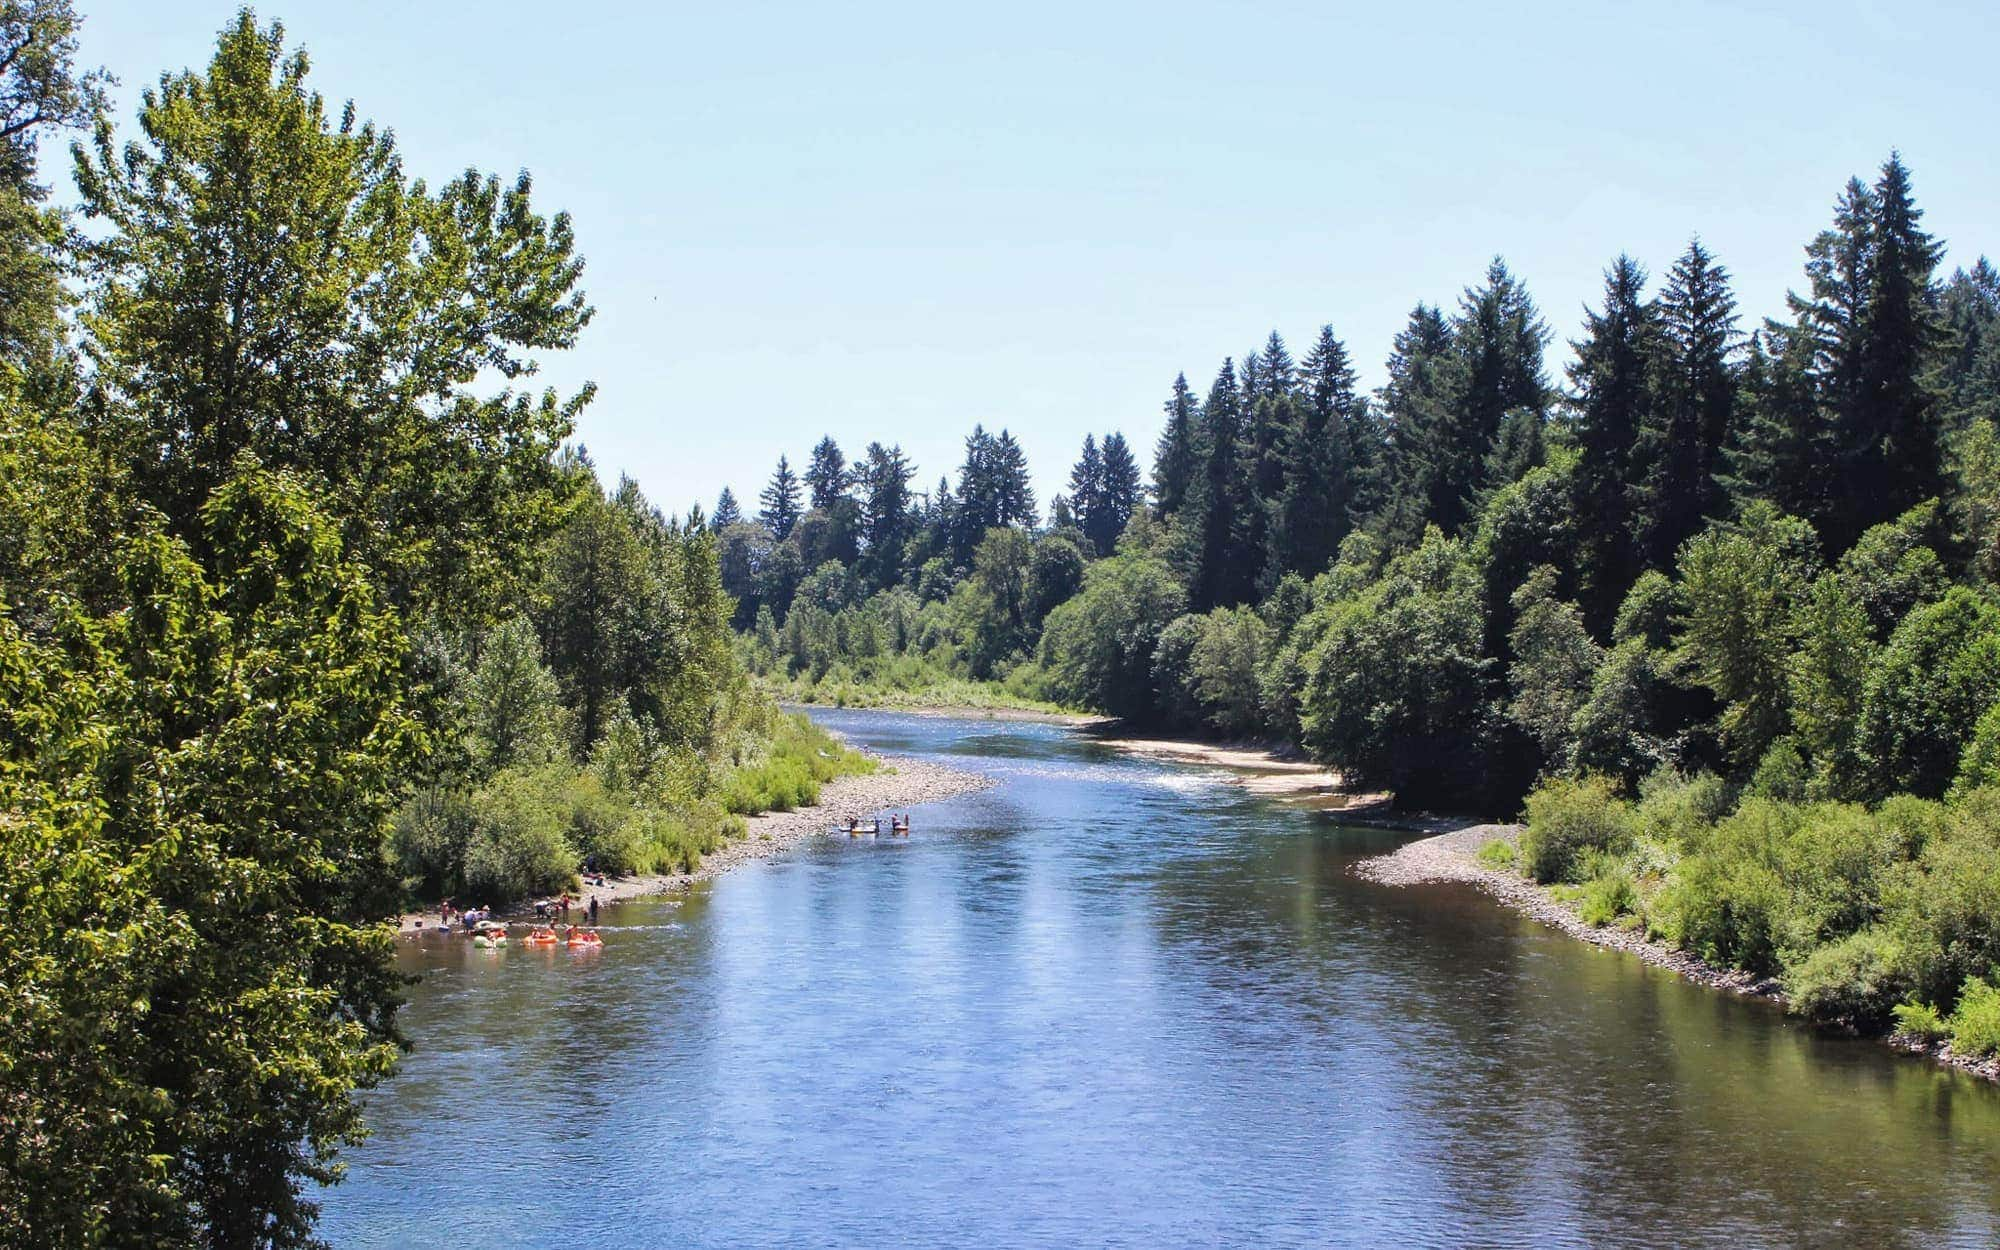 View of the Clackamas River on sunny day